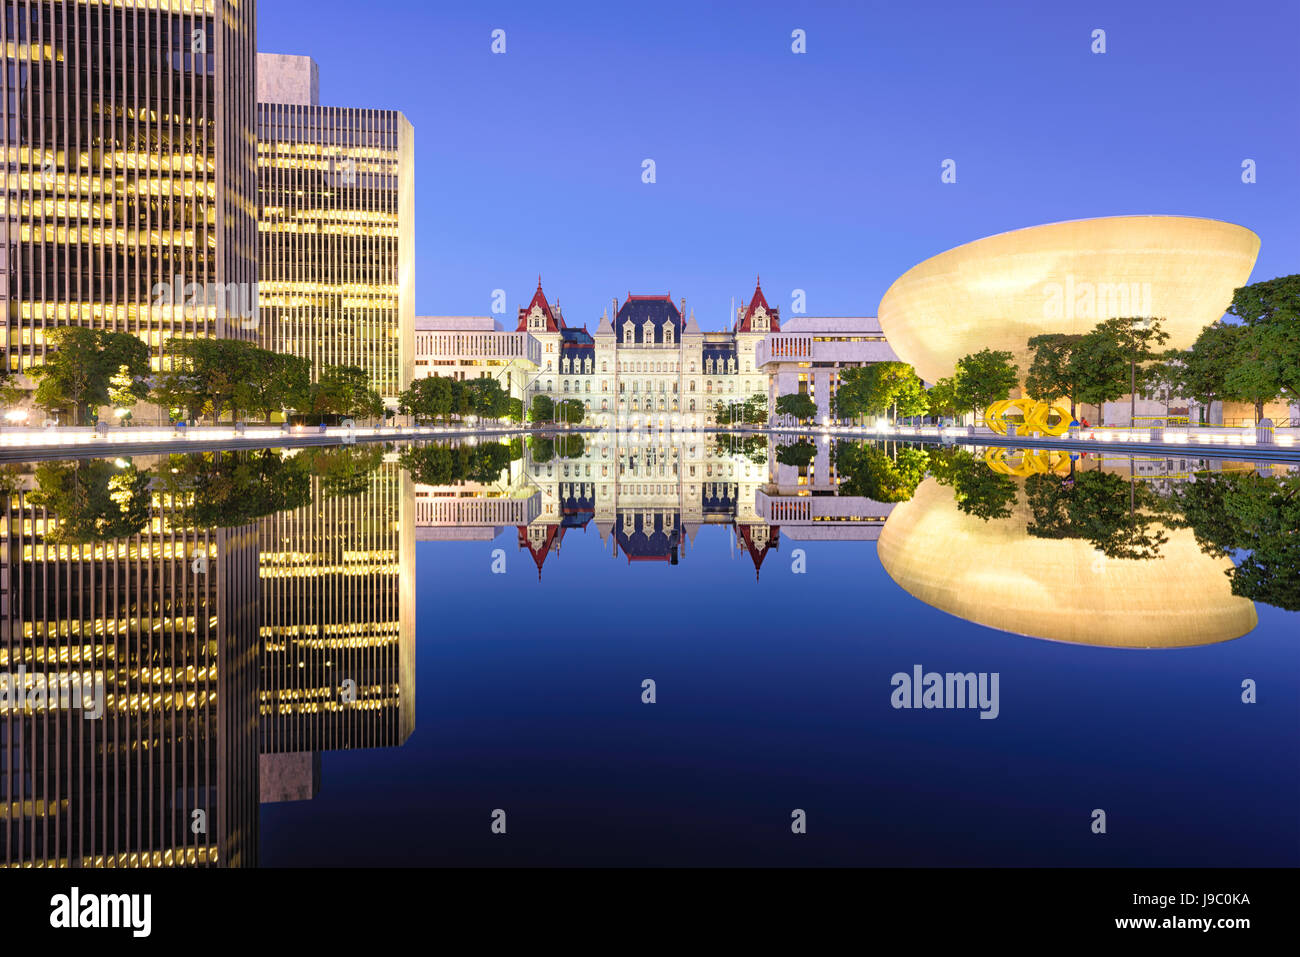 Albany, New York, USA at the New York State Capitol. - Stock Image